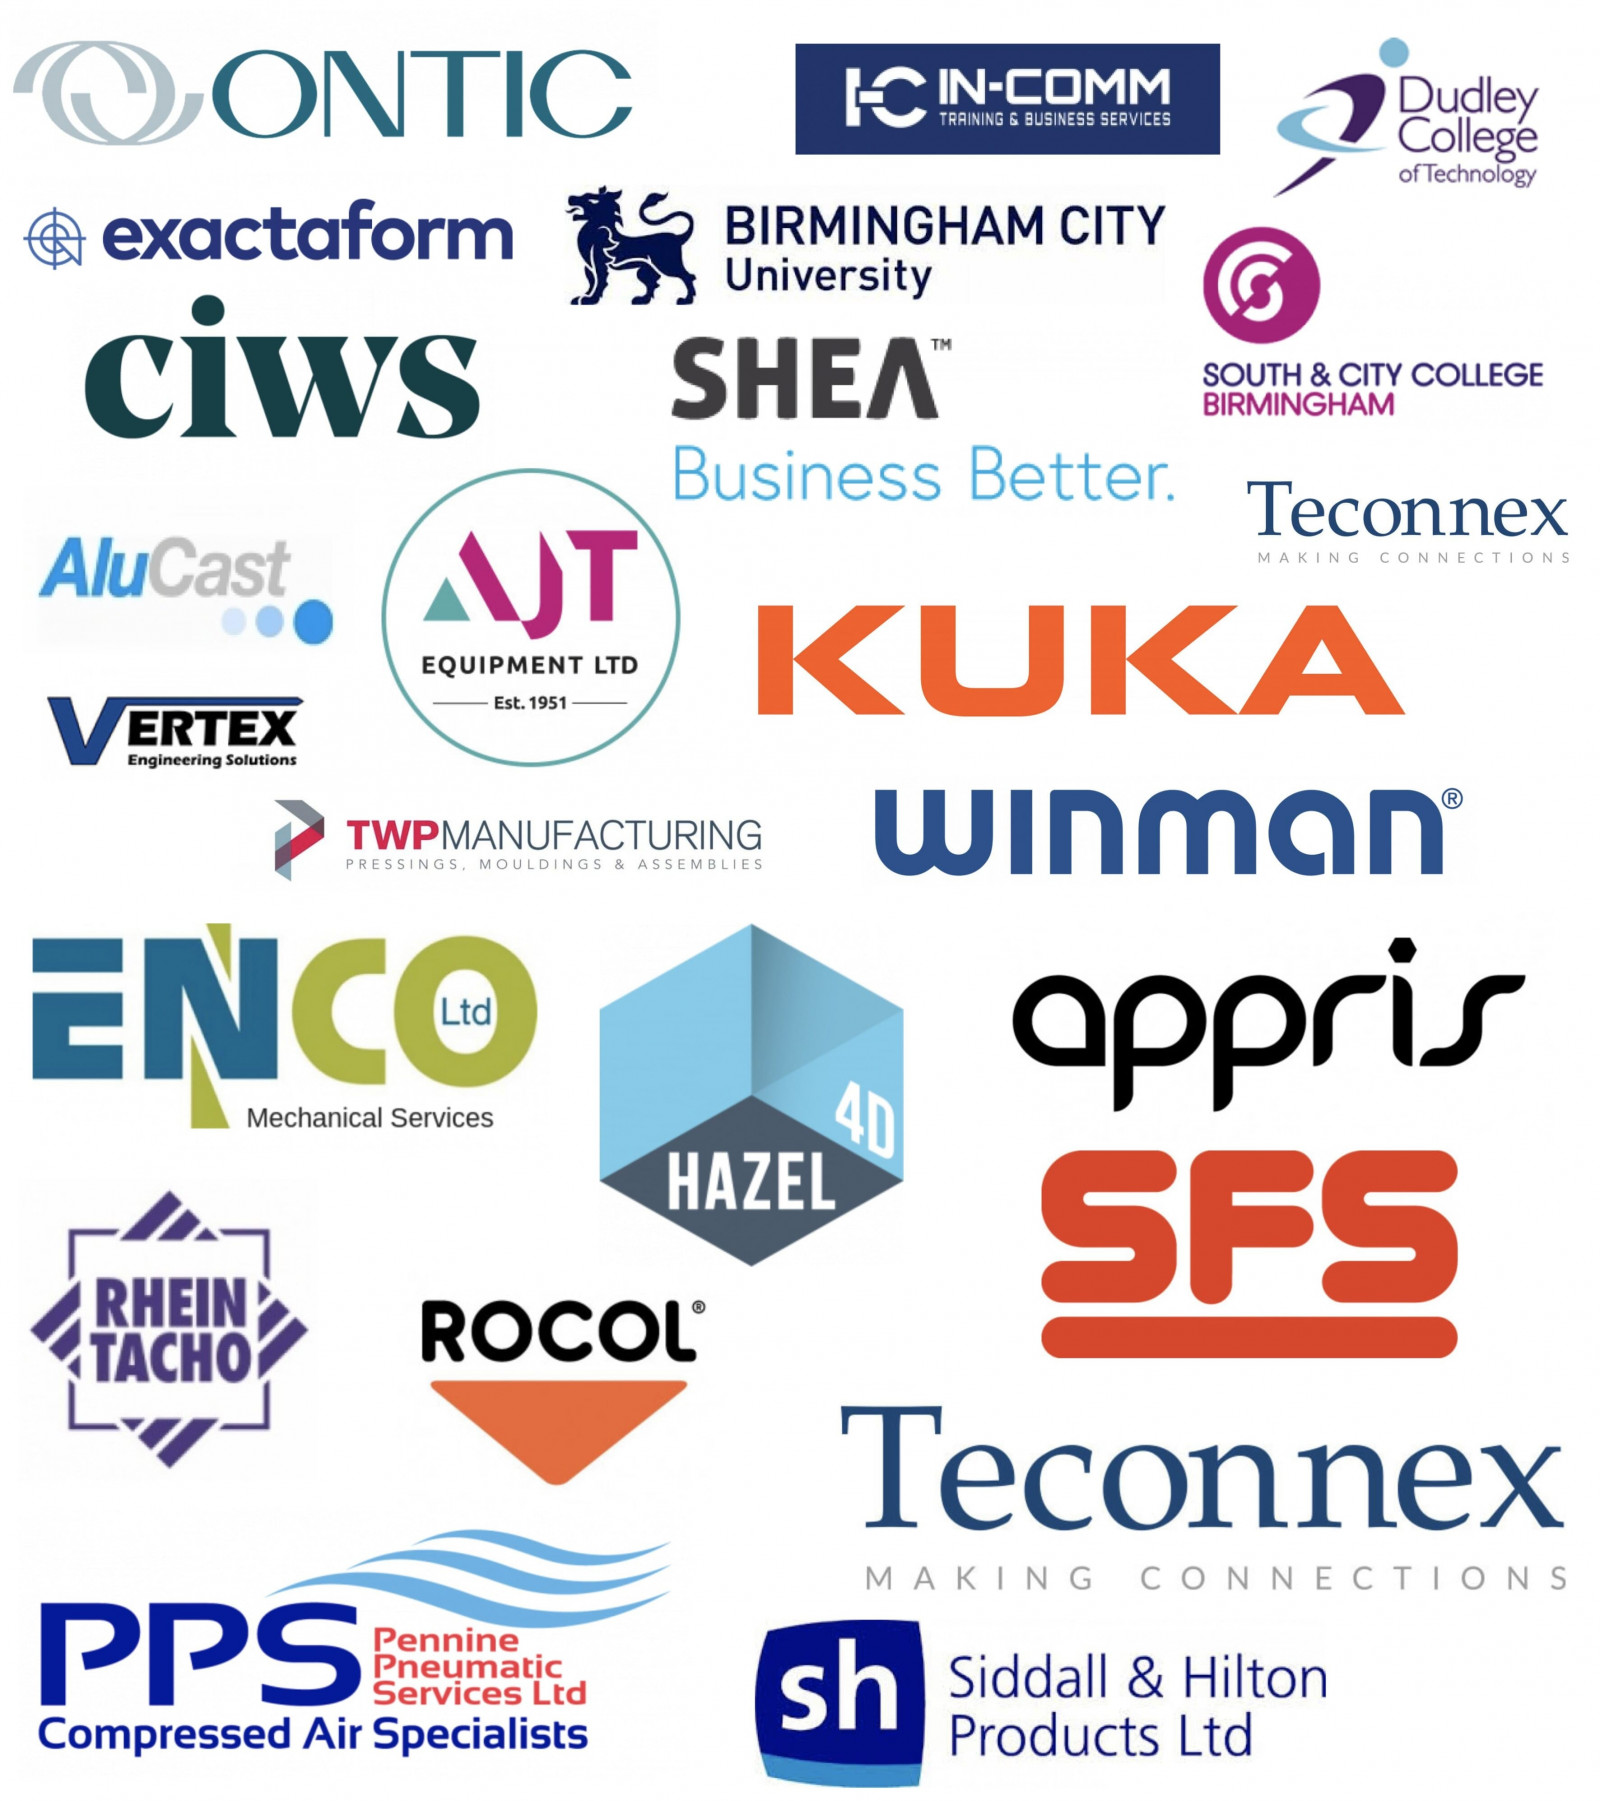 100+ Companies Predicted to Support British Industry at Virtual Careers Expo